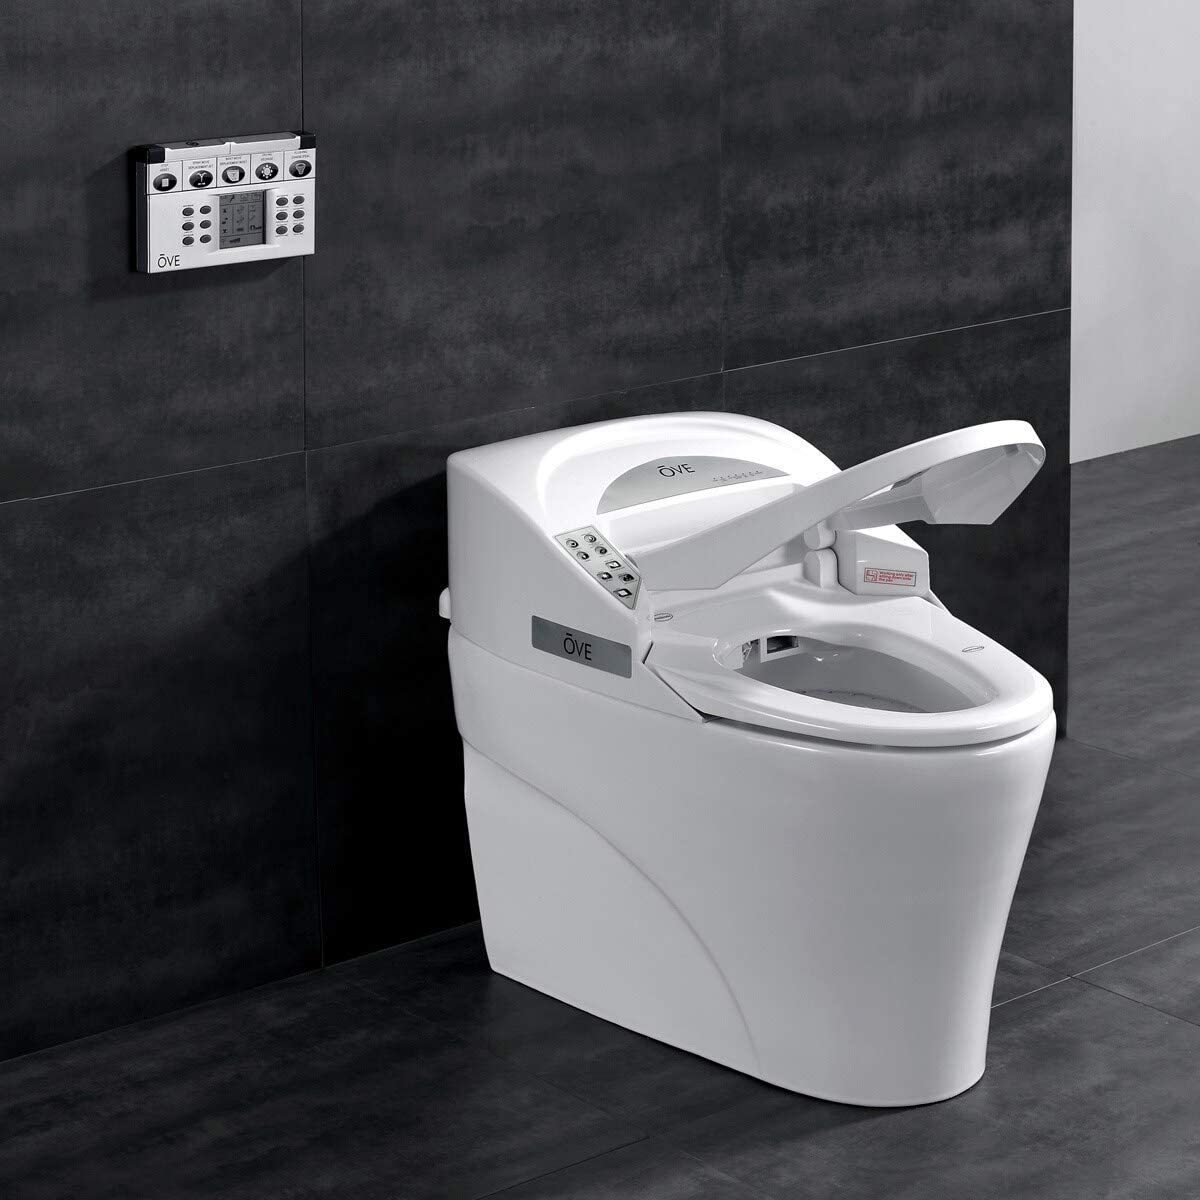 Ove Decors 735h Smart Bidet Toilet Elongated One Piece Modern Desing Automatic Flushing Heated Seat With Integrated Multi Function Remote Control White 31 3 X 16 8 X 23 8 Inches Amazon Com